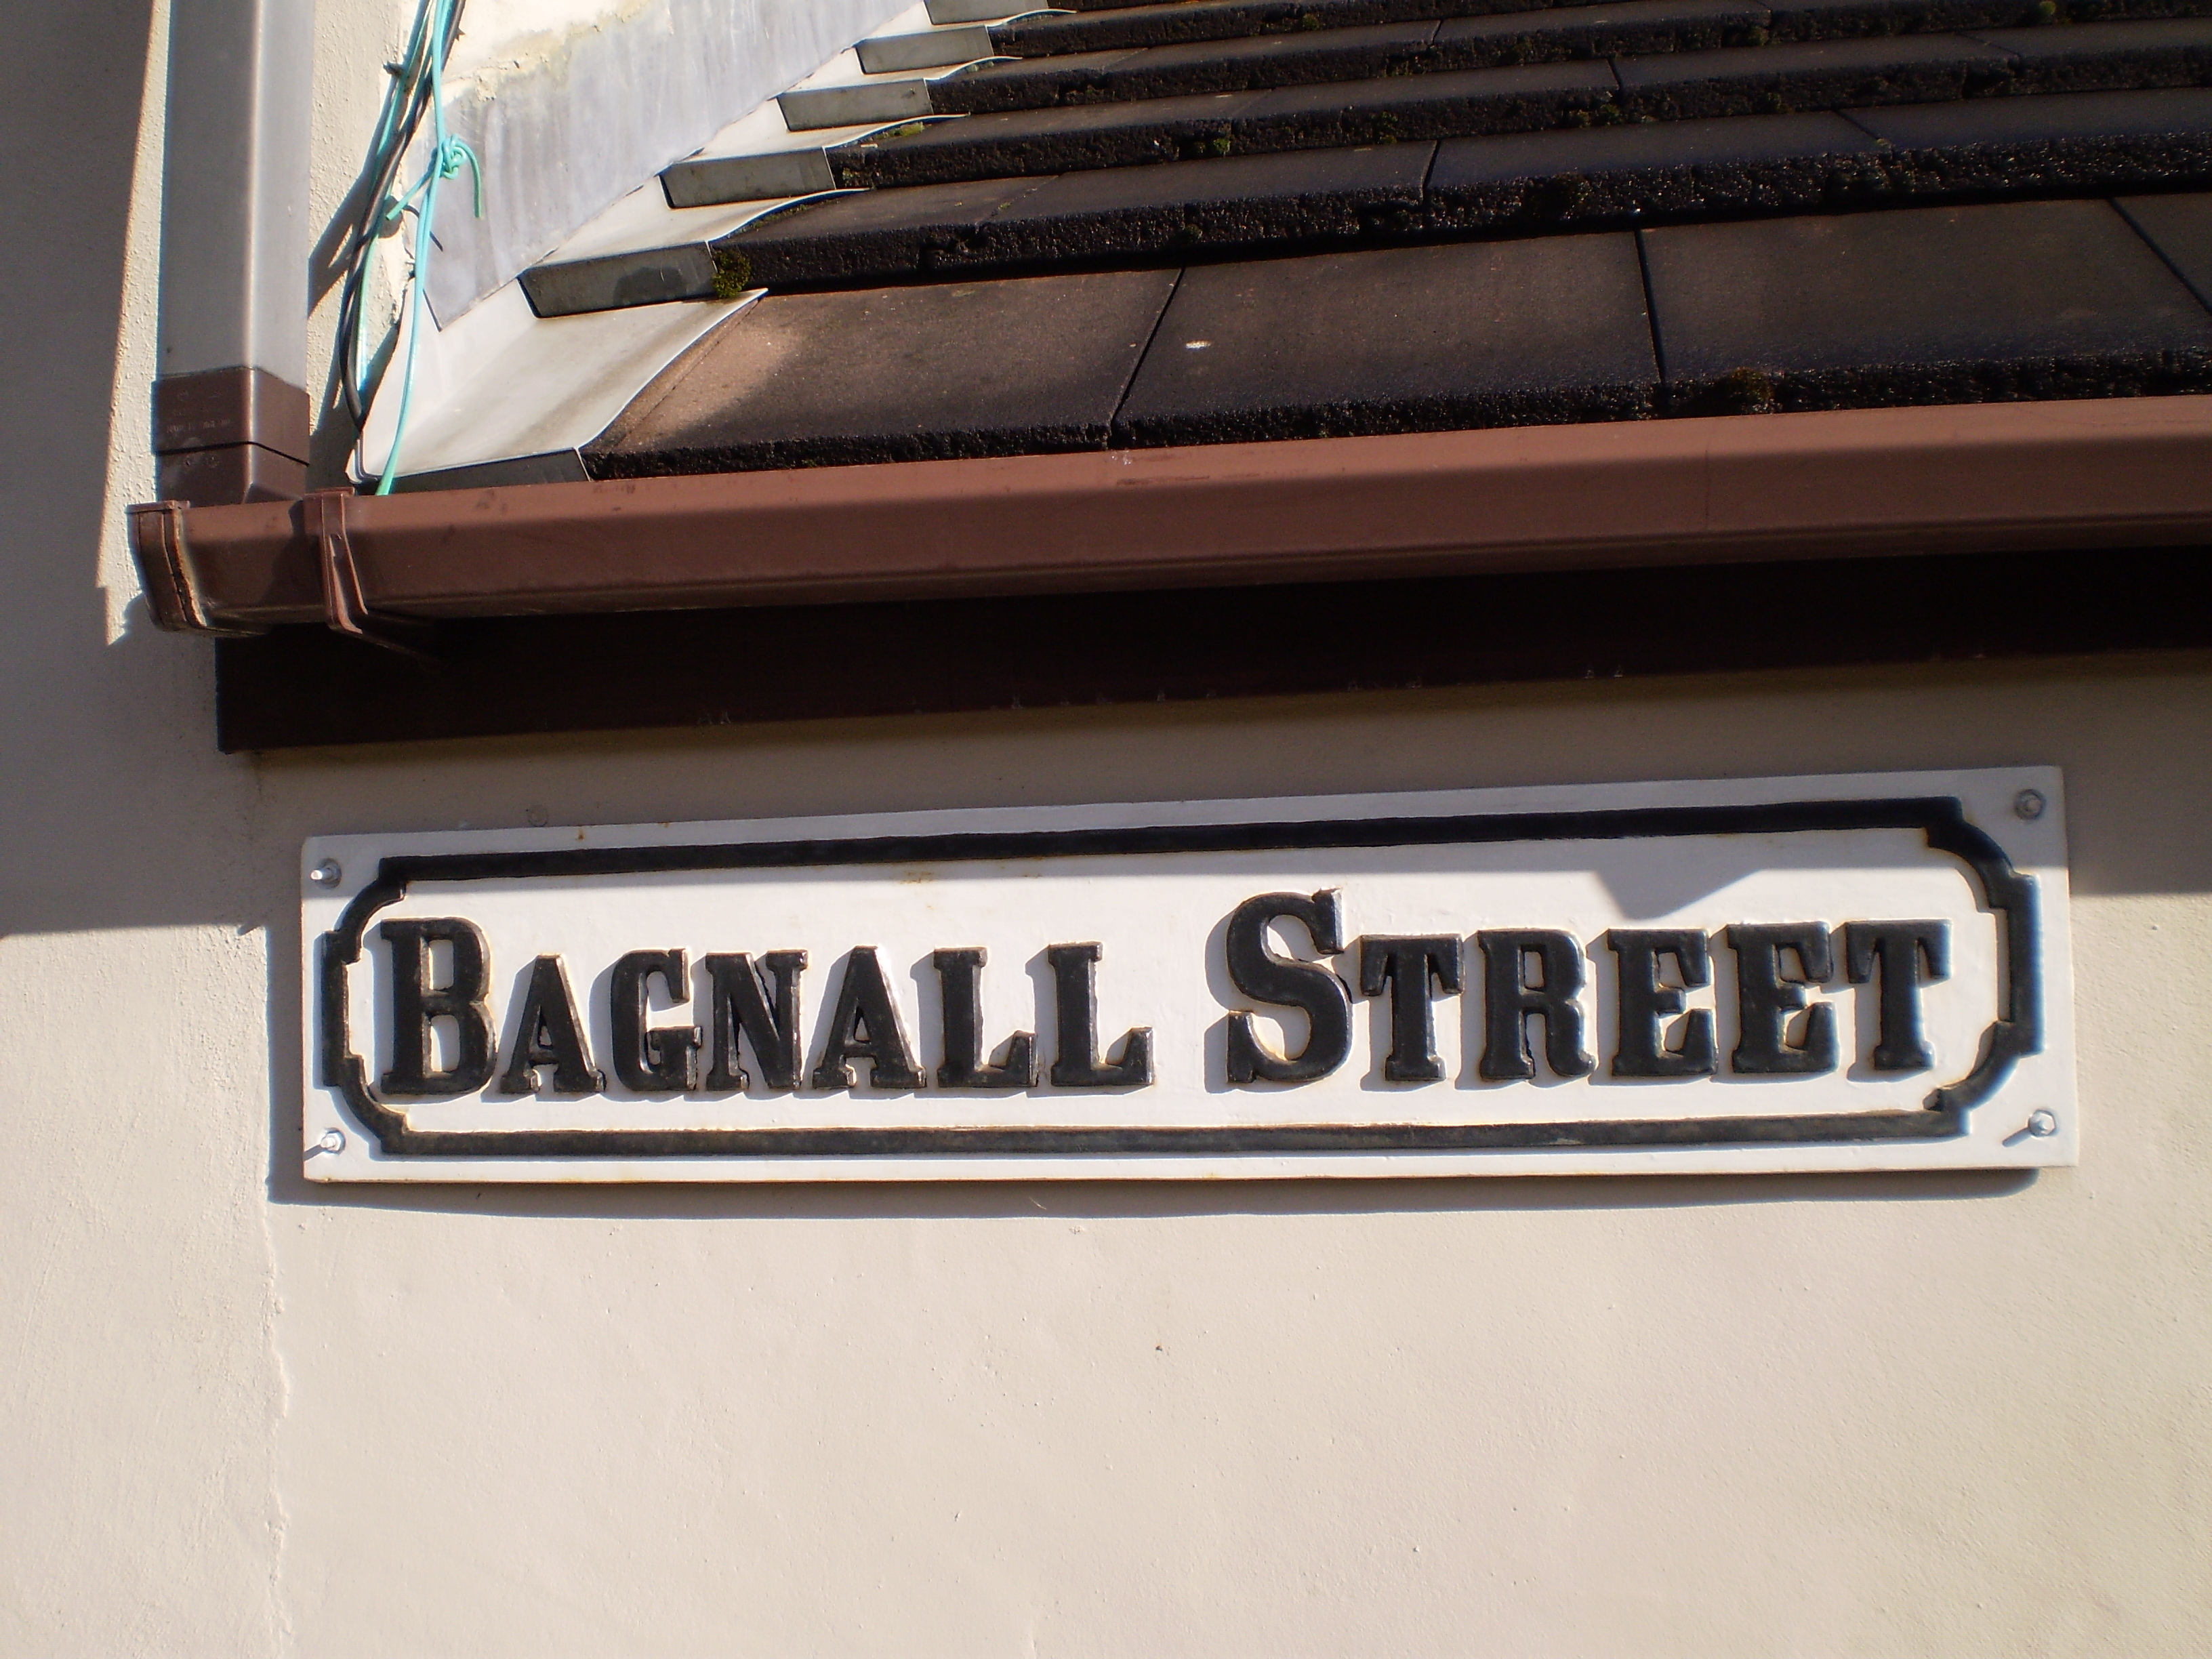 The Bagnall Street Sign